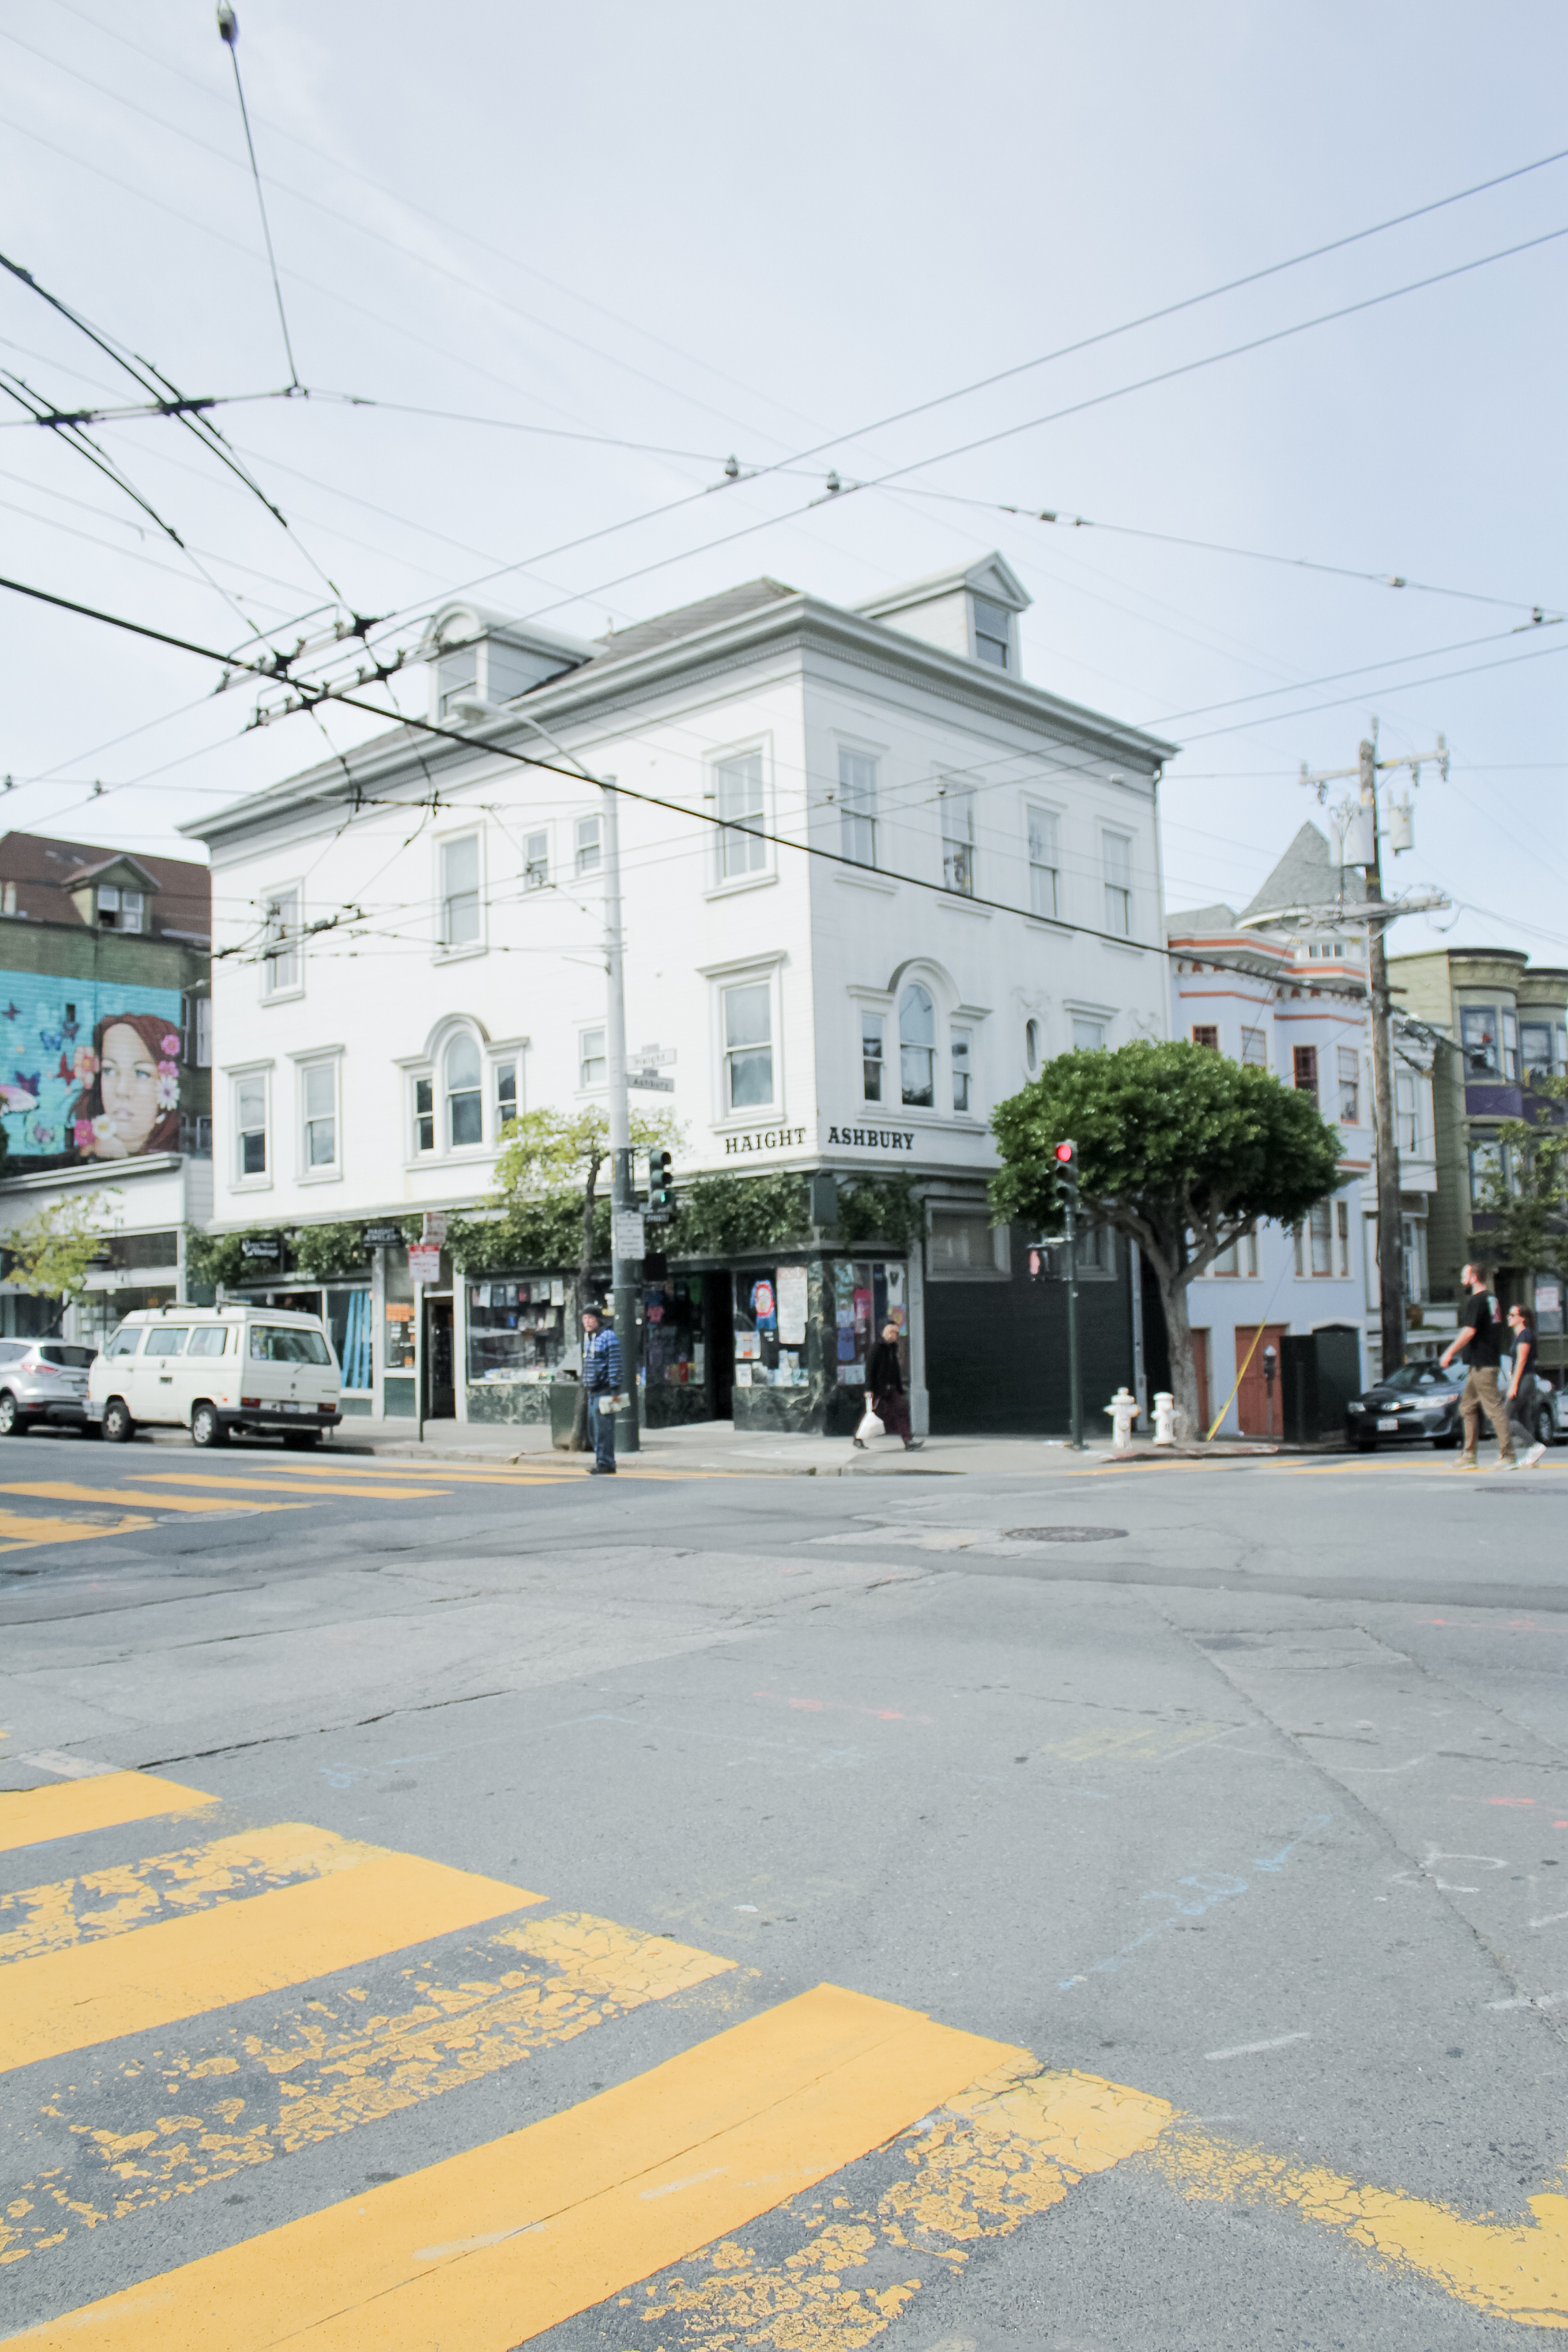 The corner of Haight-Ashbury in San Francisco, CA || 7 PLACES TO VISIT IN HAIGHT-ASHBURY, SAN FRANCISCO || tinted green